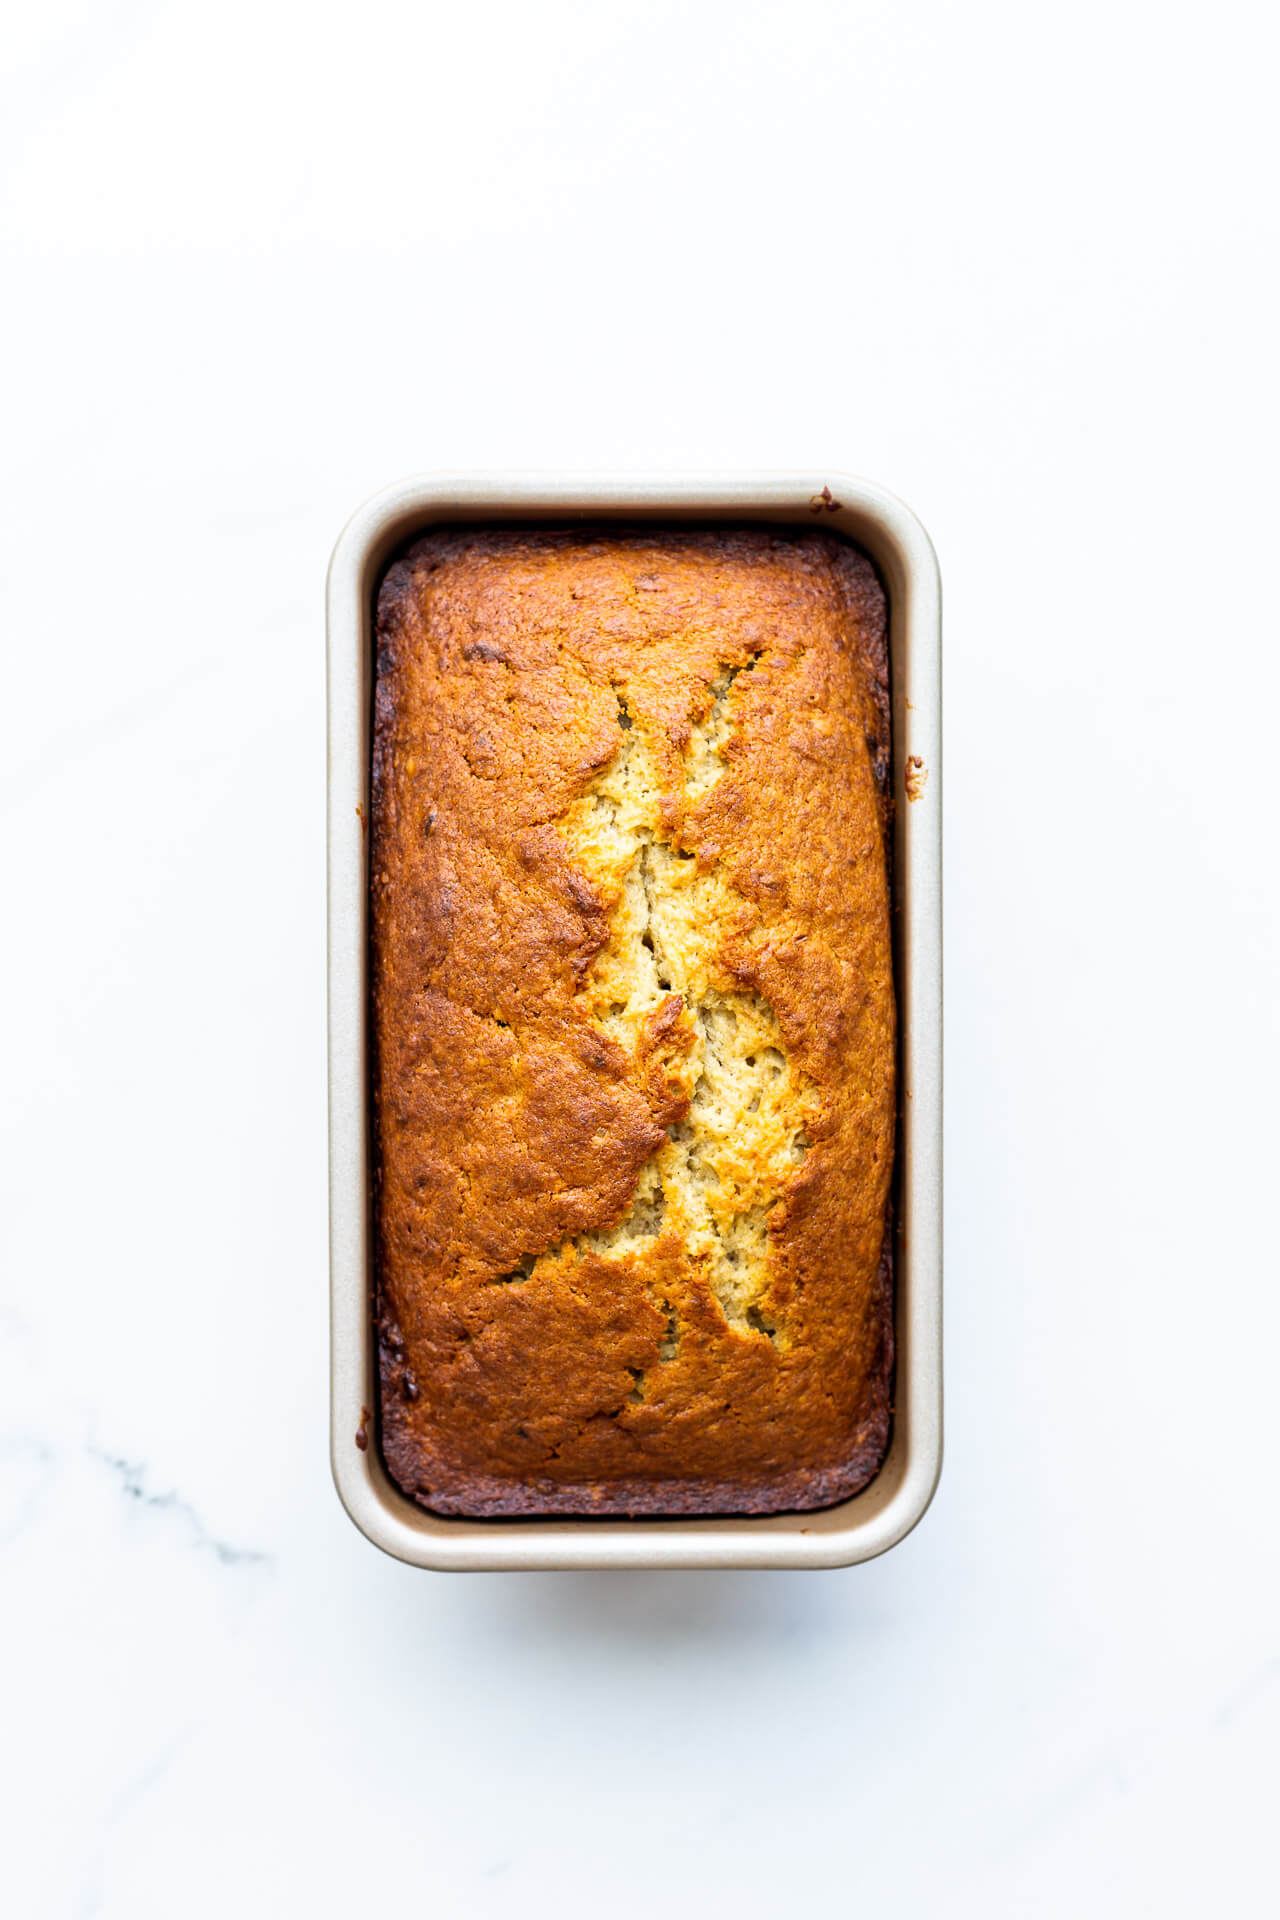 Baked banana bread in a loaf pan